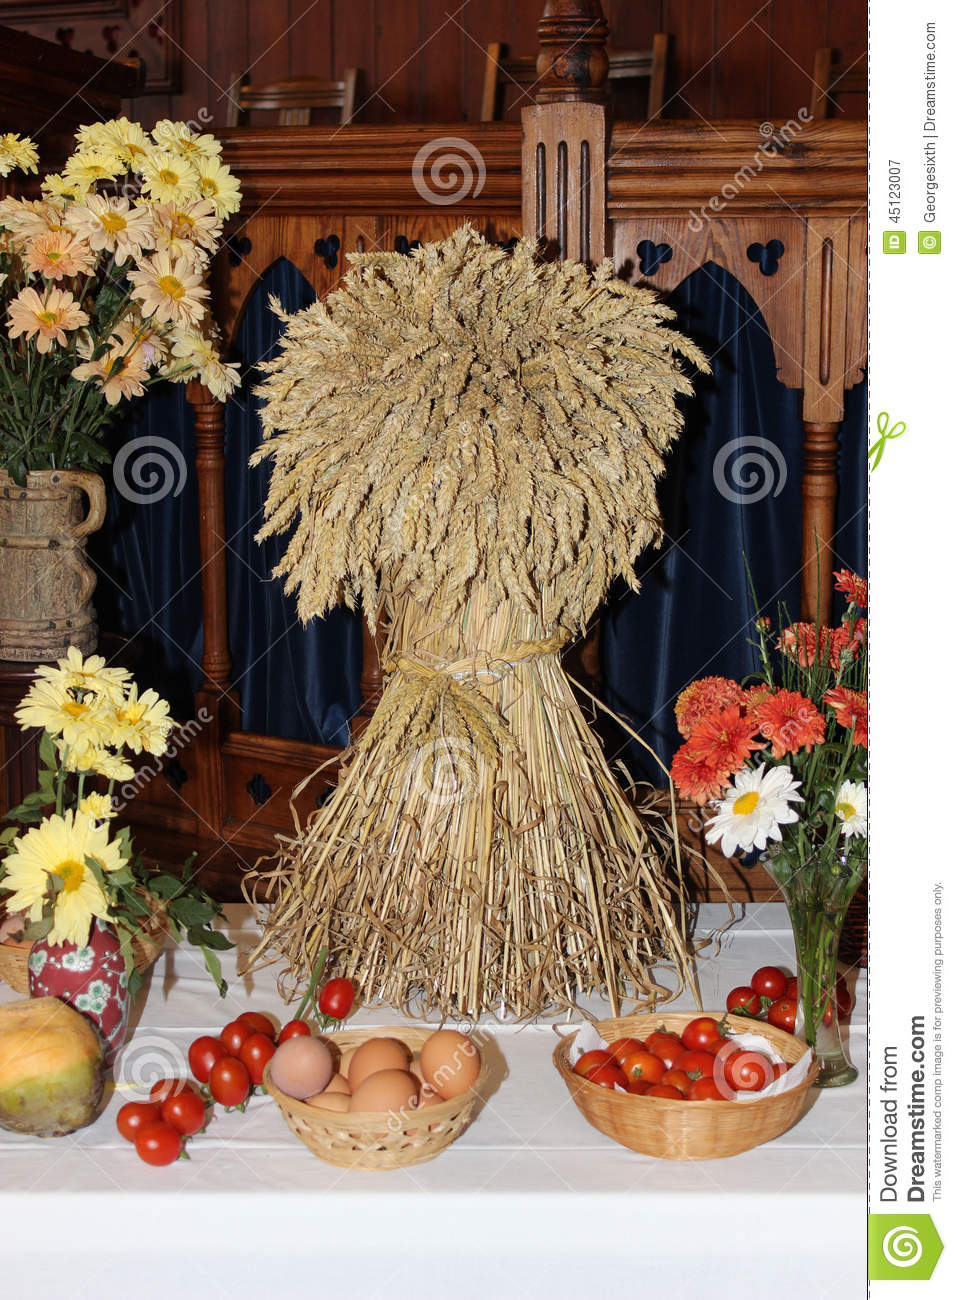 church corn decorated decorations festival harvest - Harvest Decorations